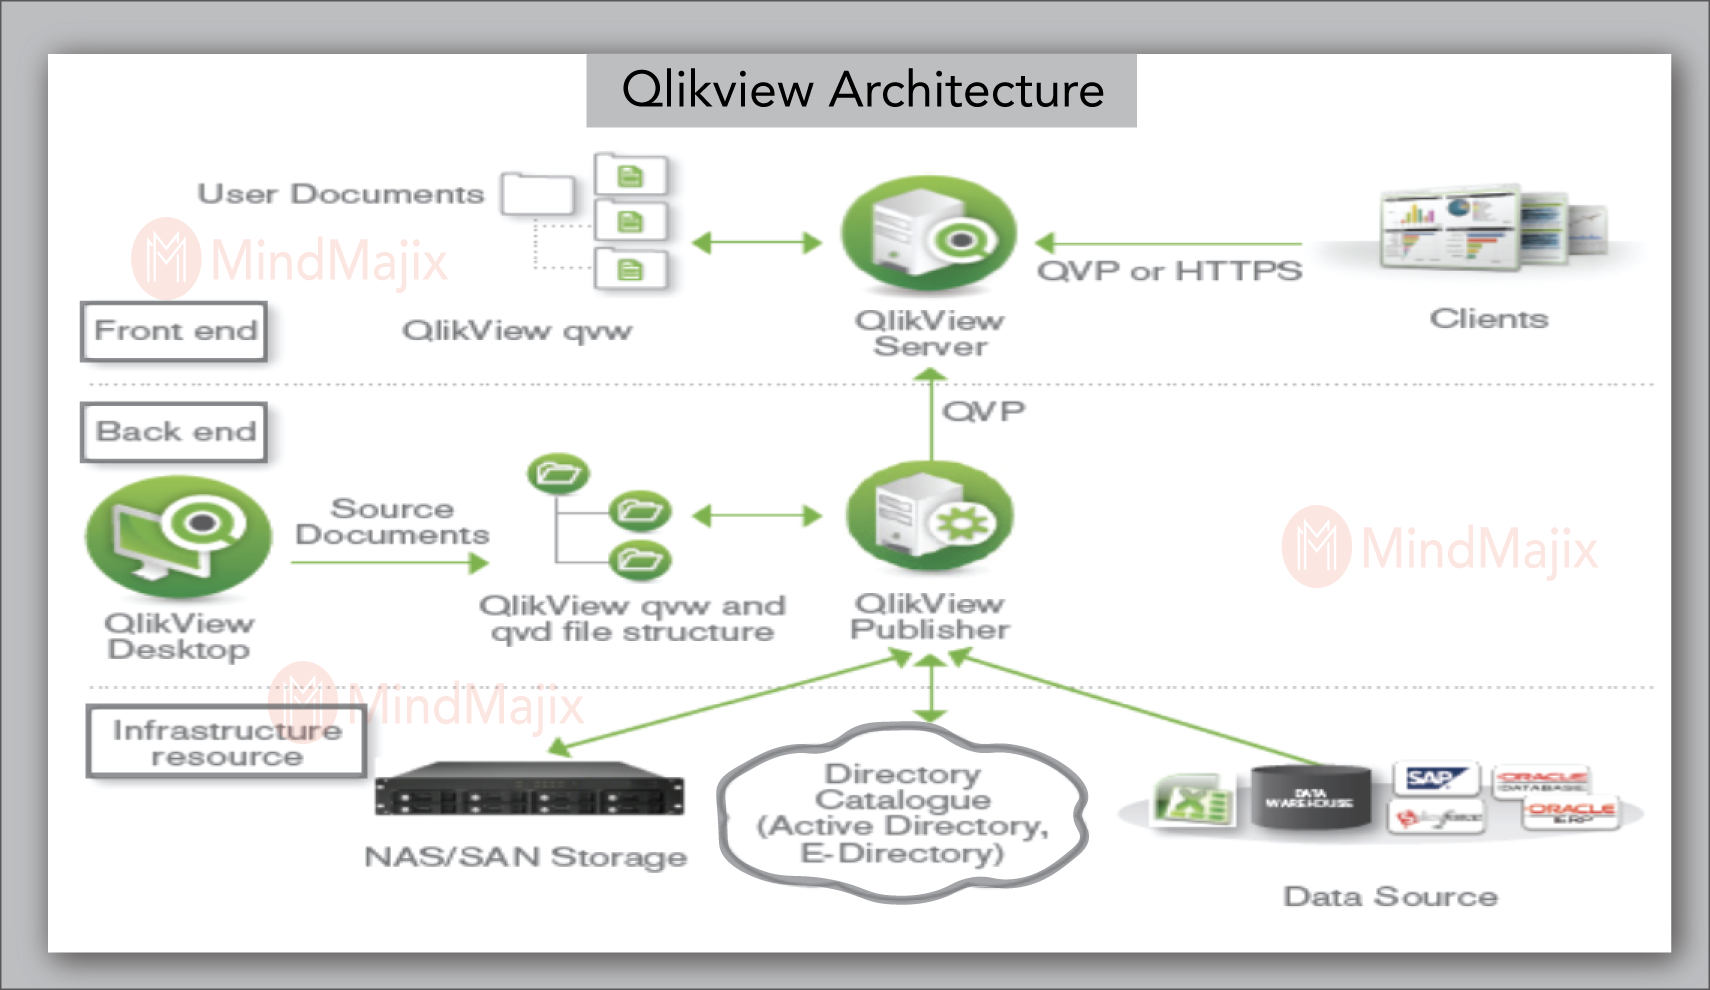 Qlikview Architecture